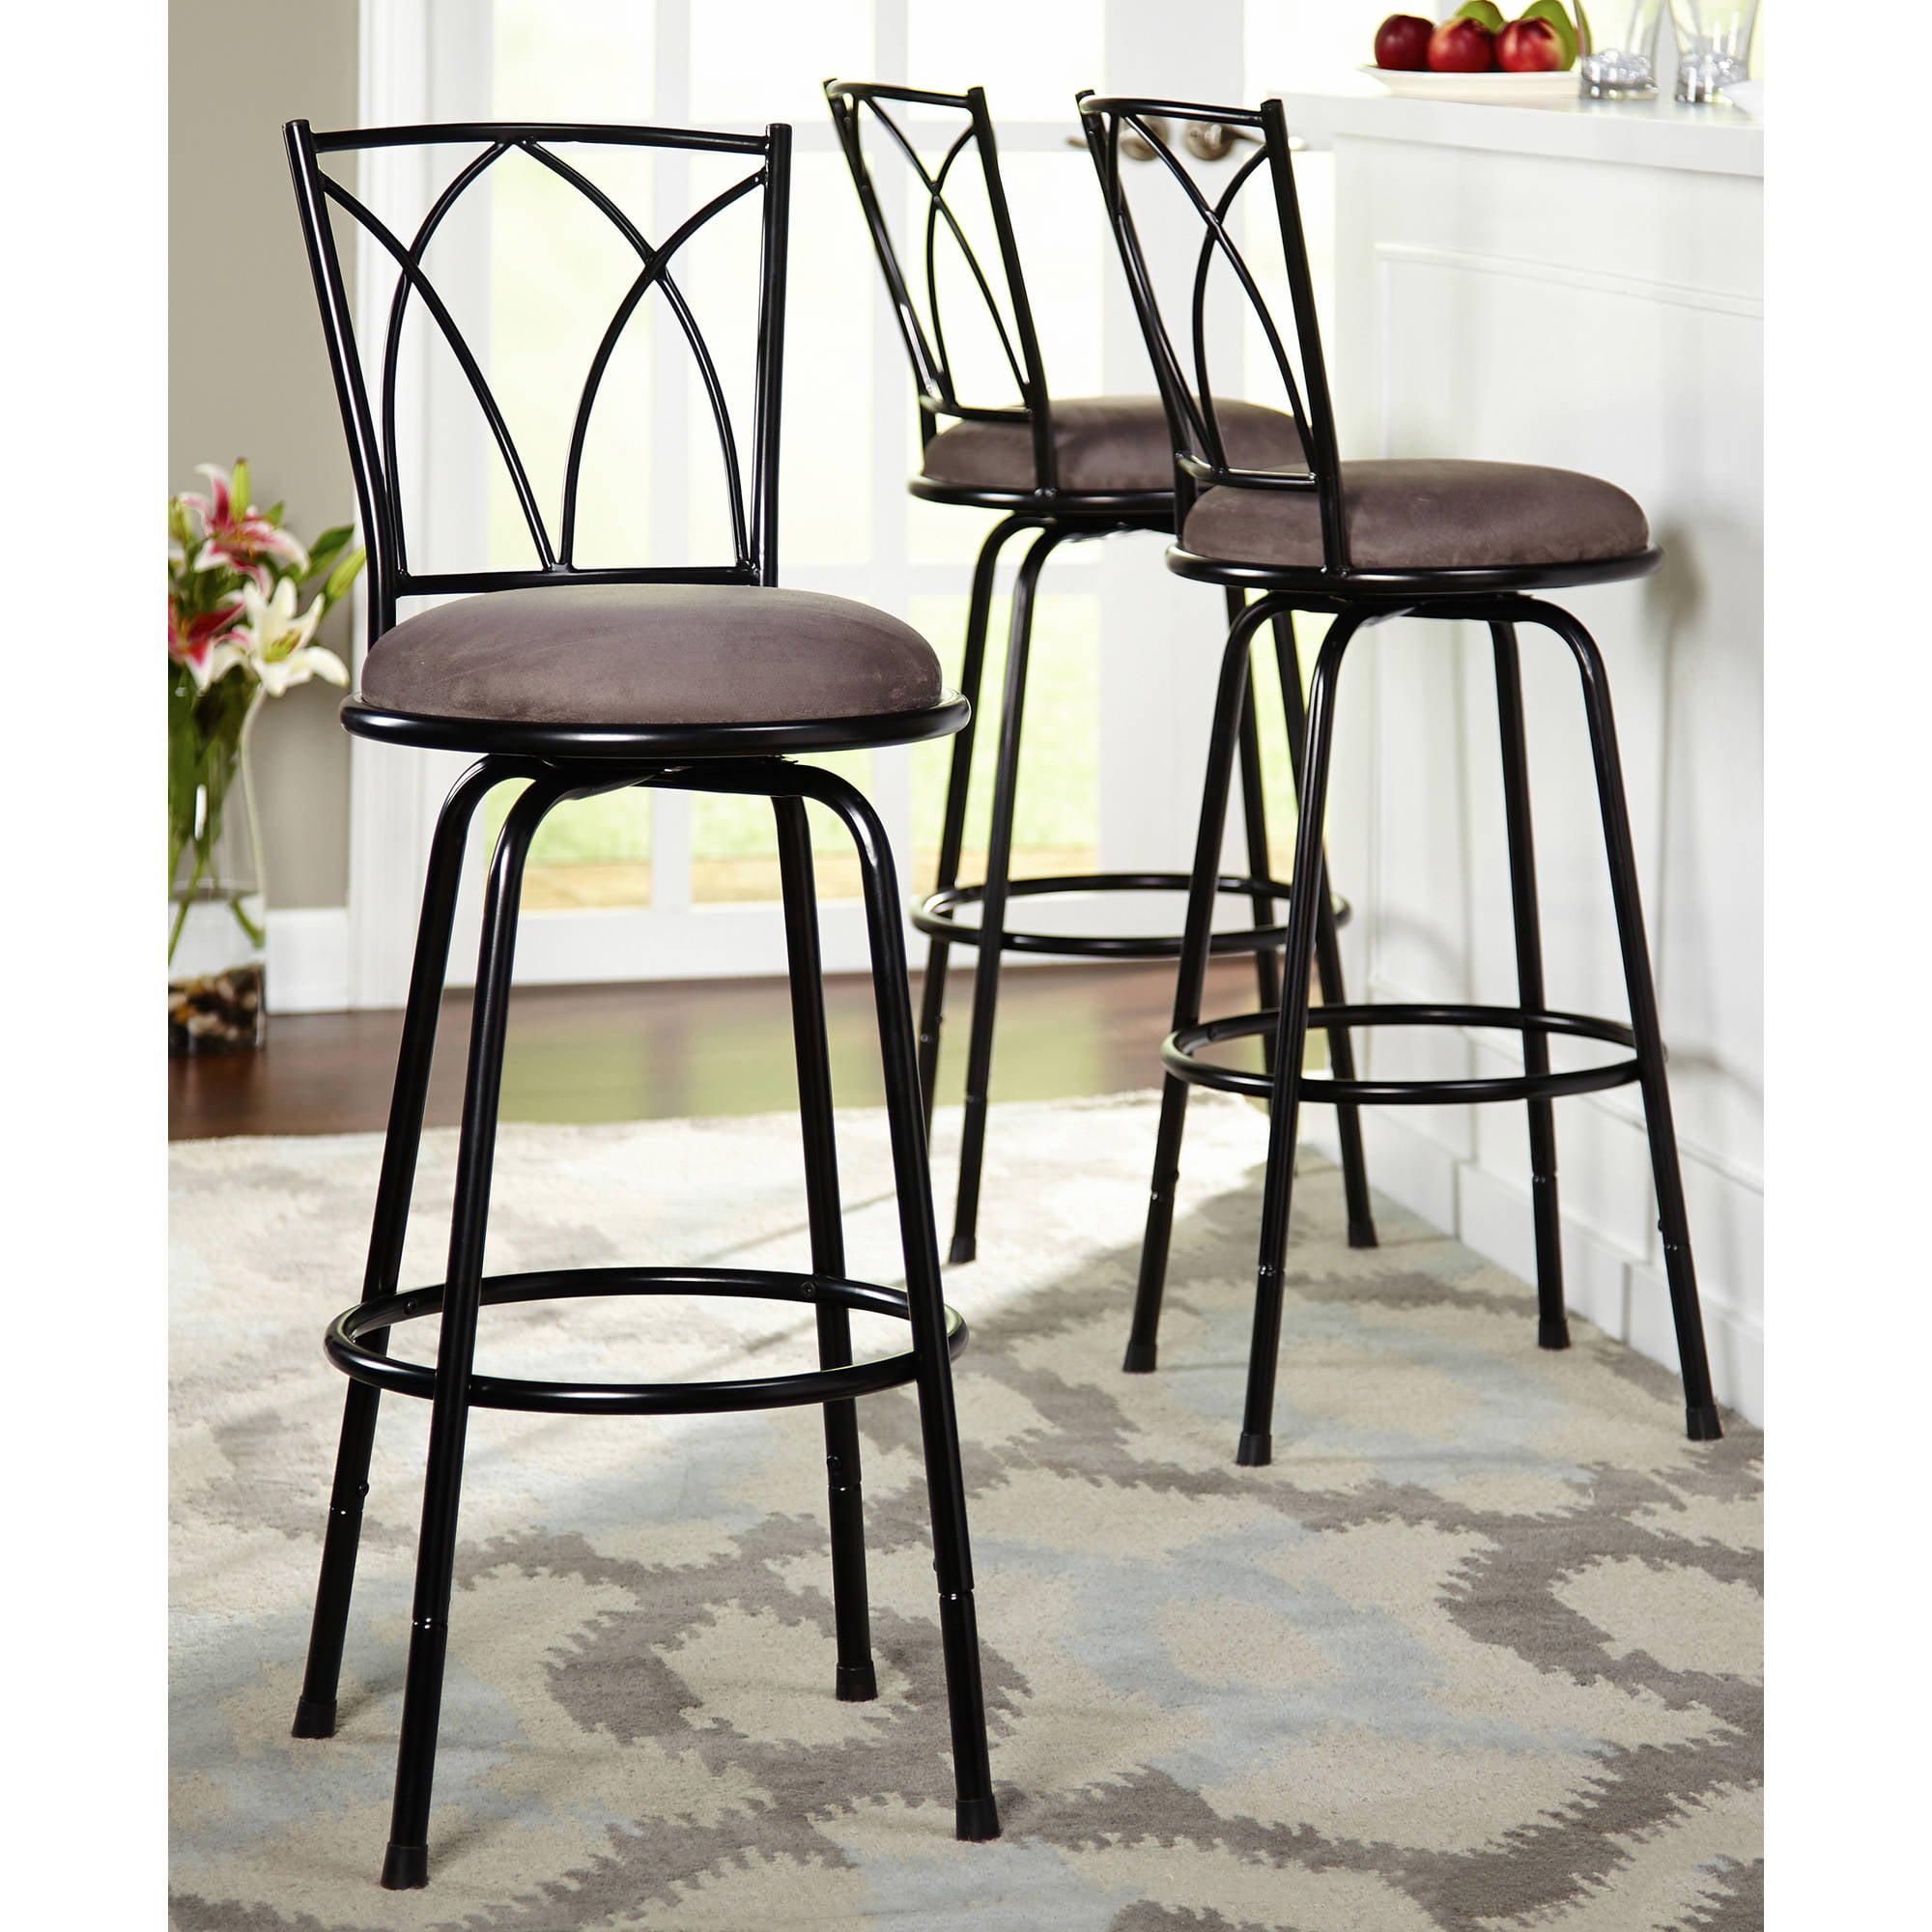 sc 1 st  Walmart & Delta Adjustable Metal Barstools 3-Piece Set Black - Walmart.com